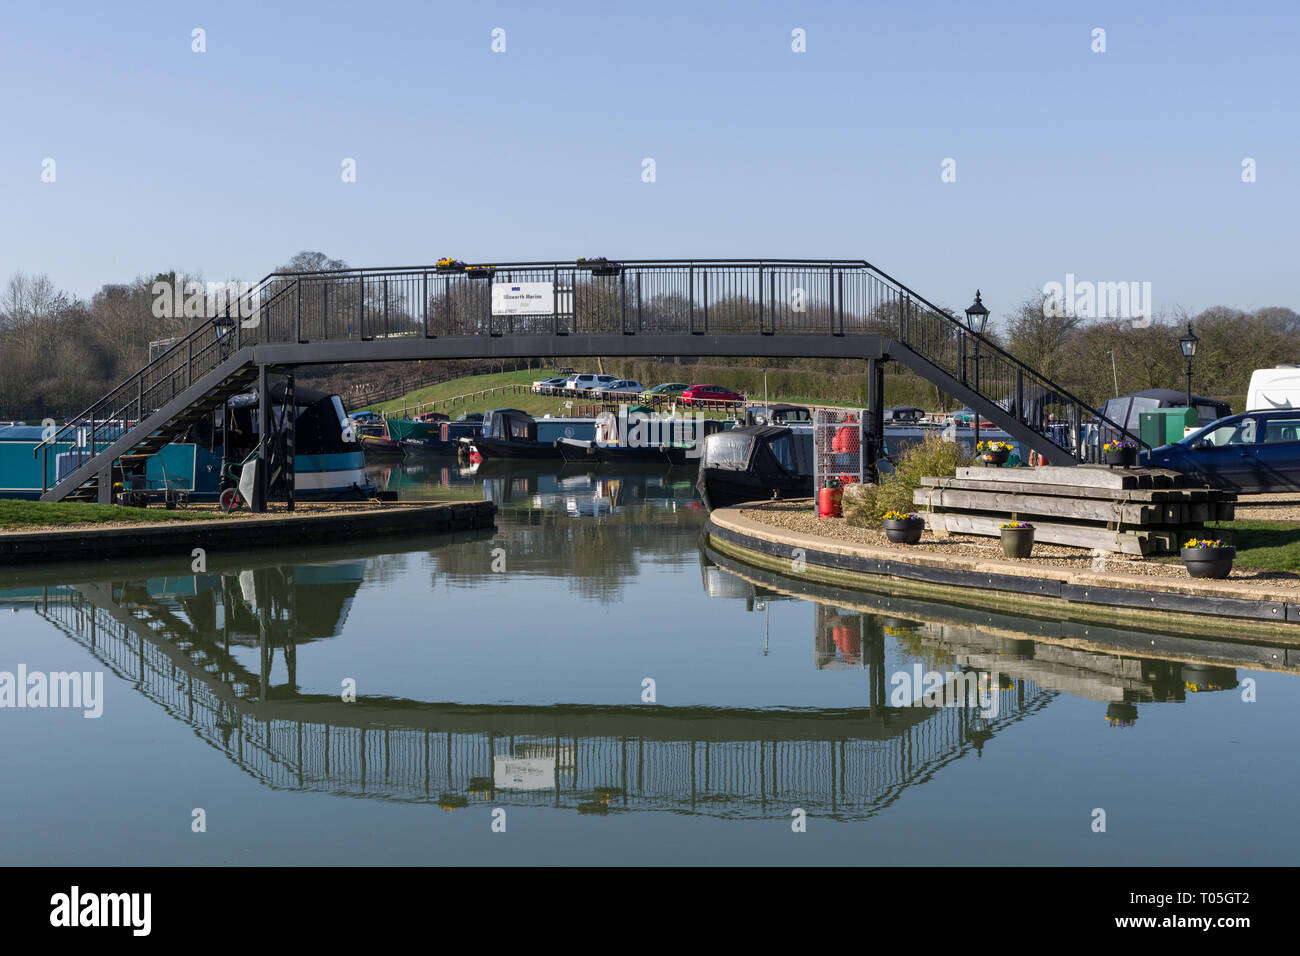 Entrance from the Grand Union canal under a pedestrian bridge to Blisworth Marina, Northamptonshire, UK - Stock Image